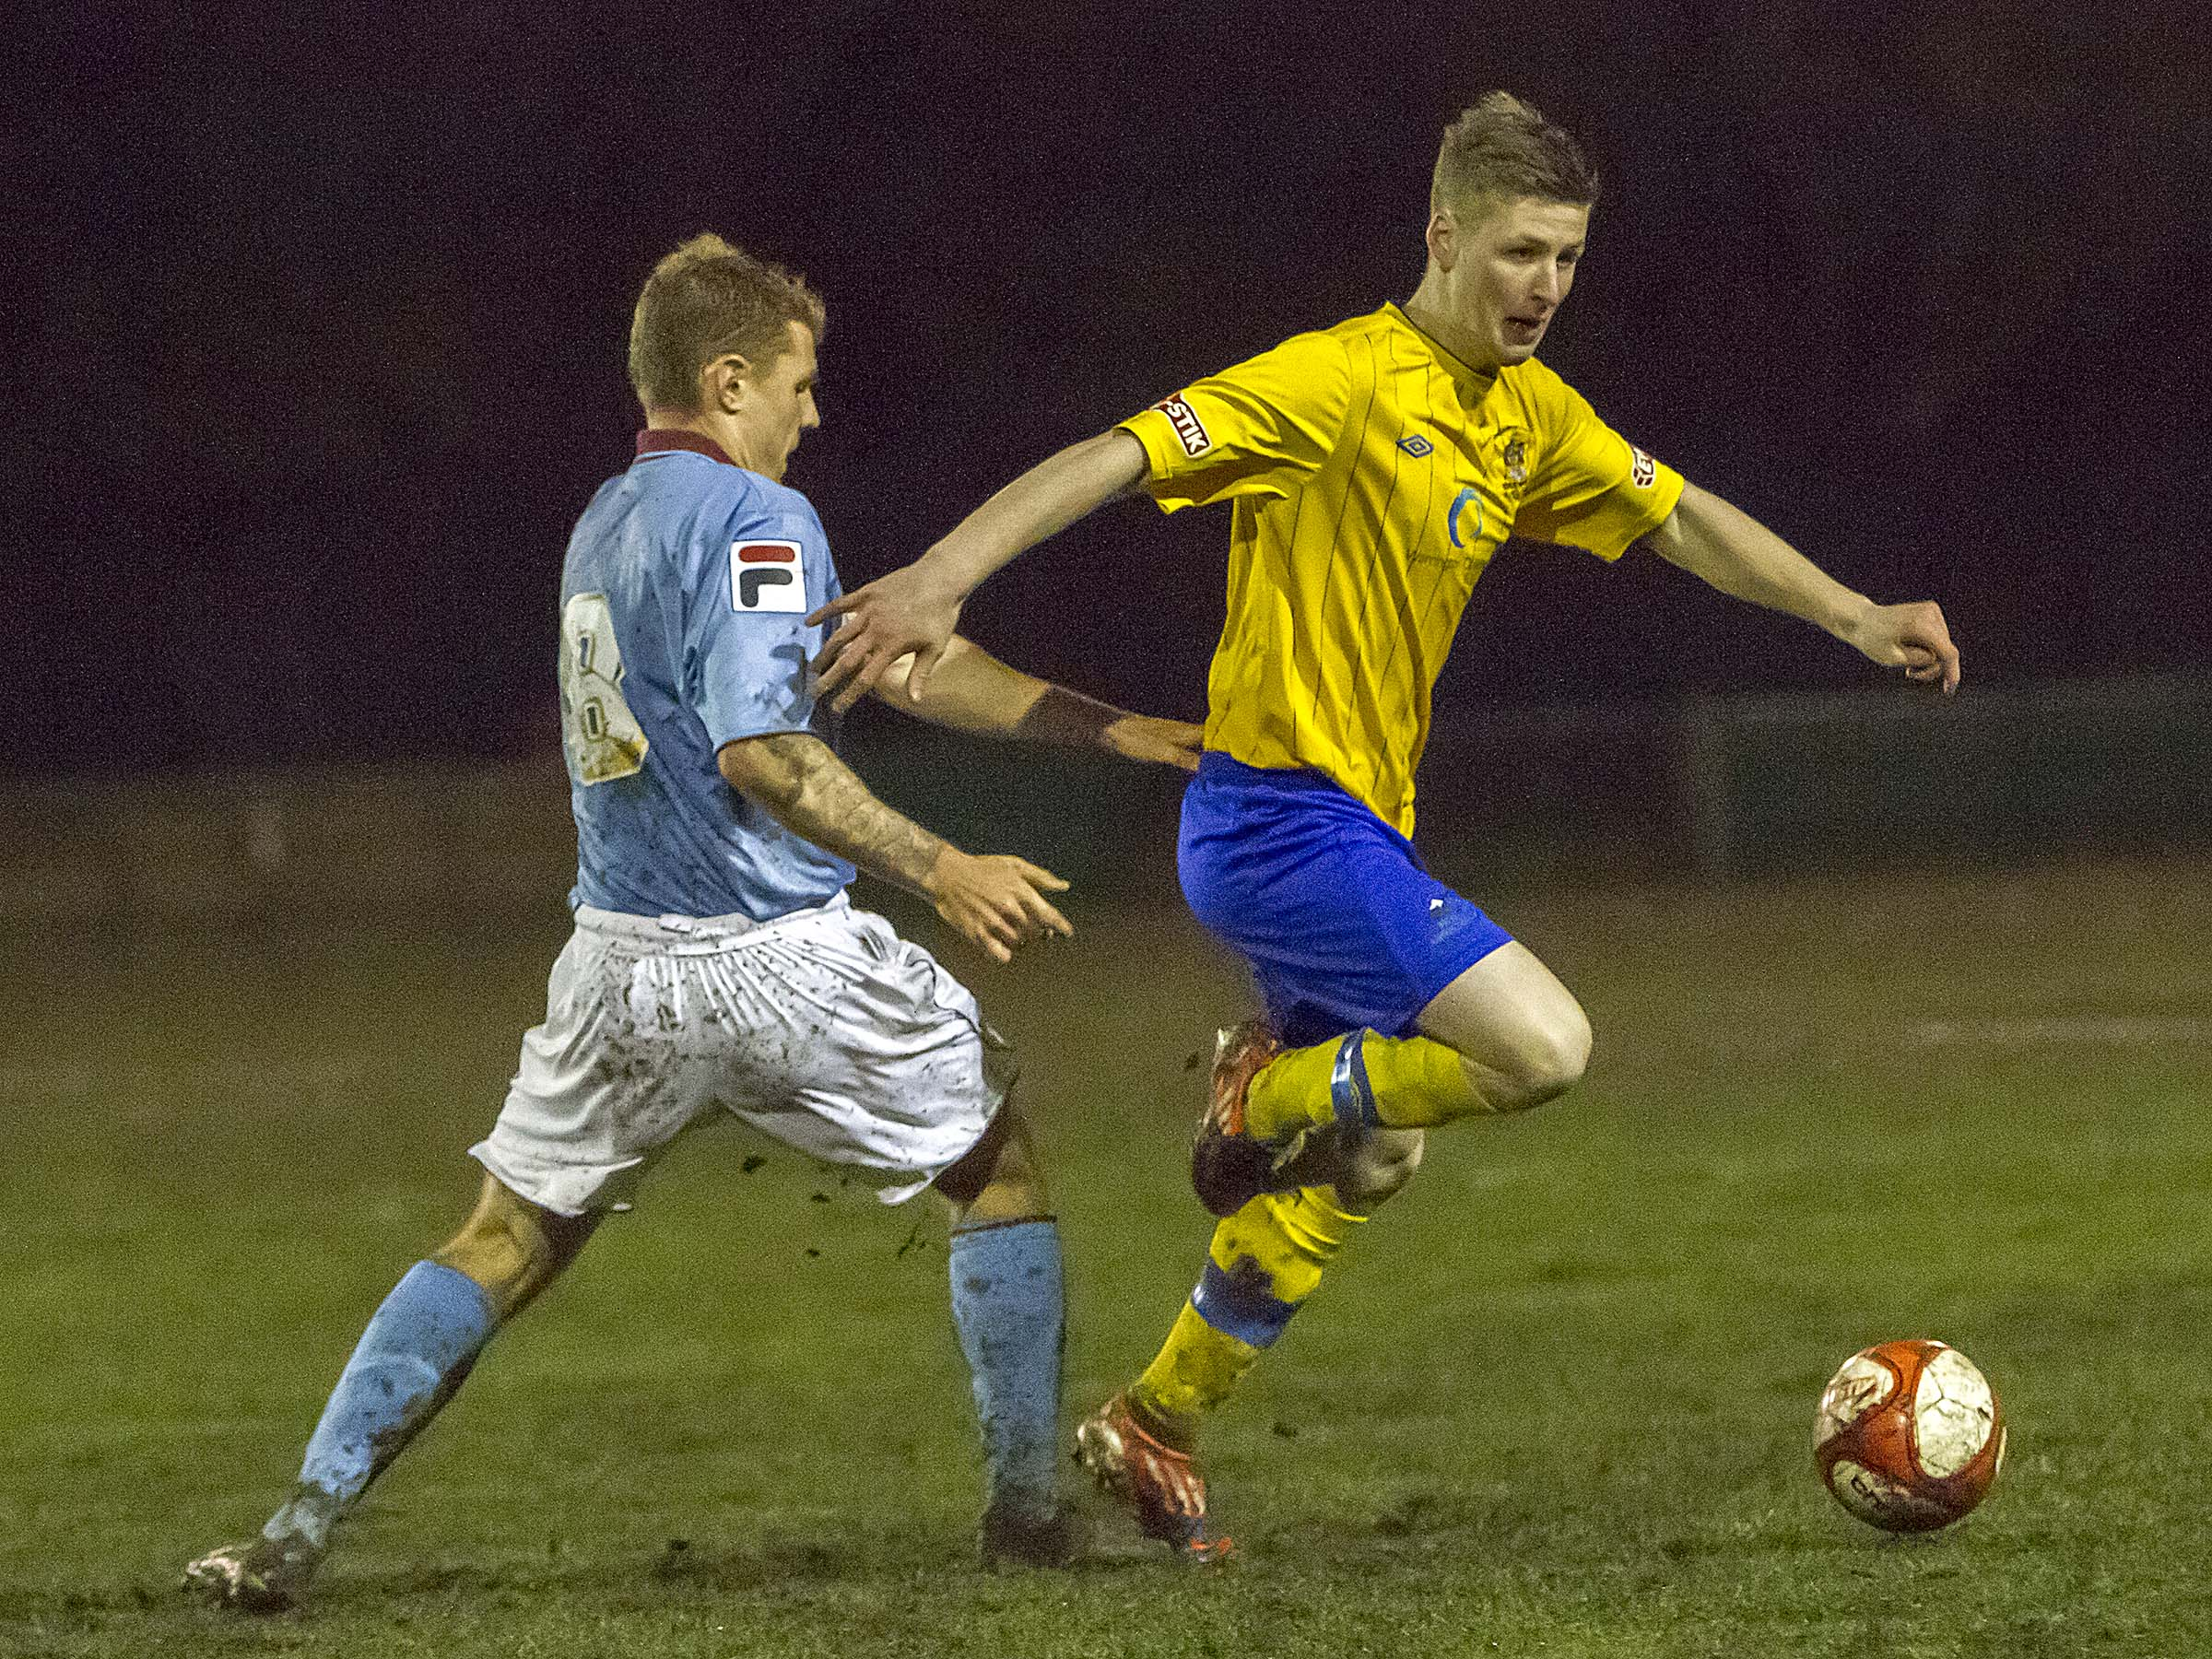 Dylan Glass scored Warrington's only goal. Picture by John Hopkins